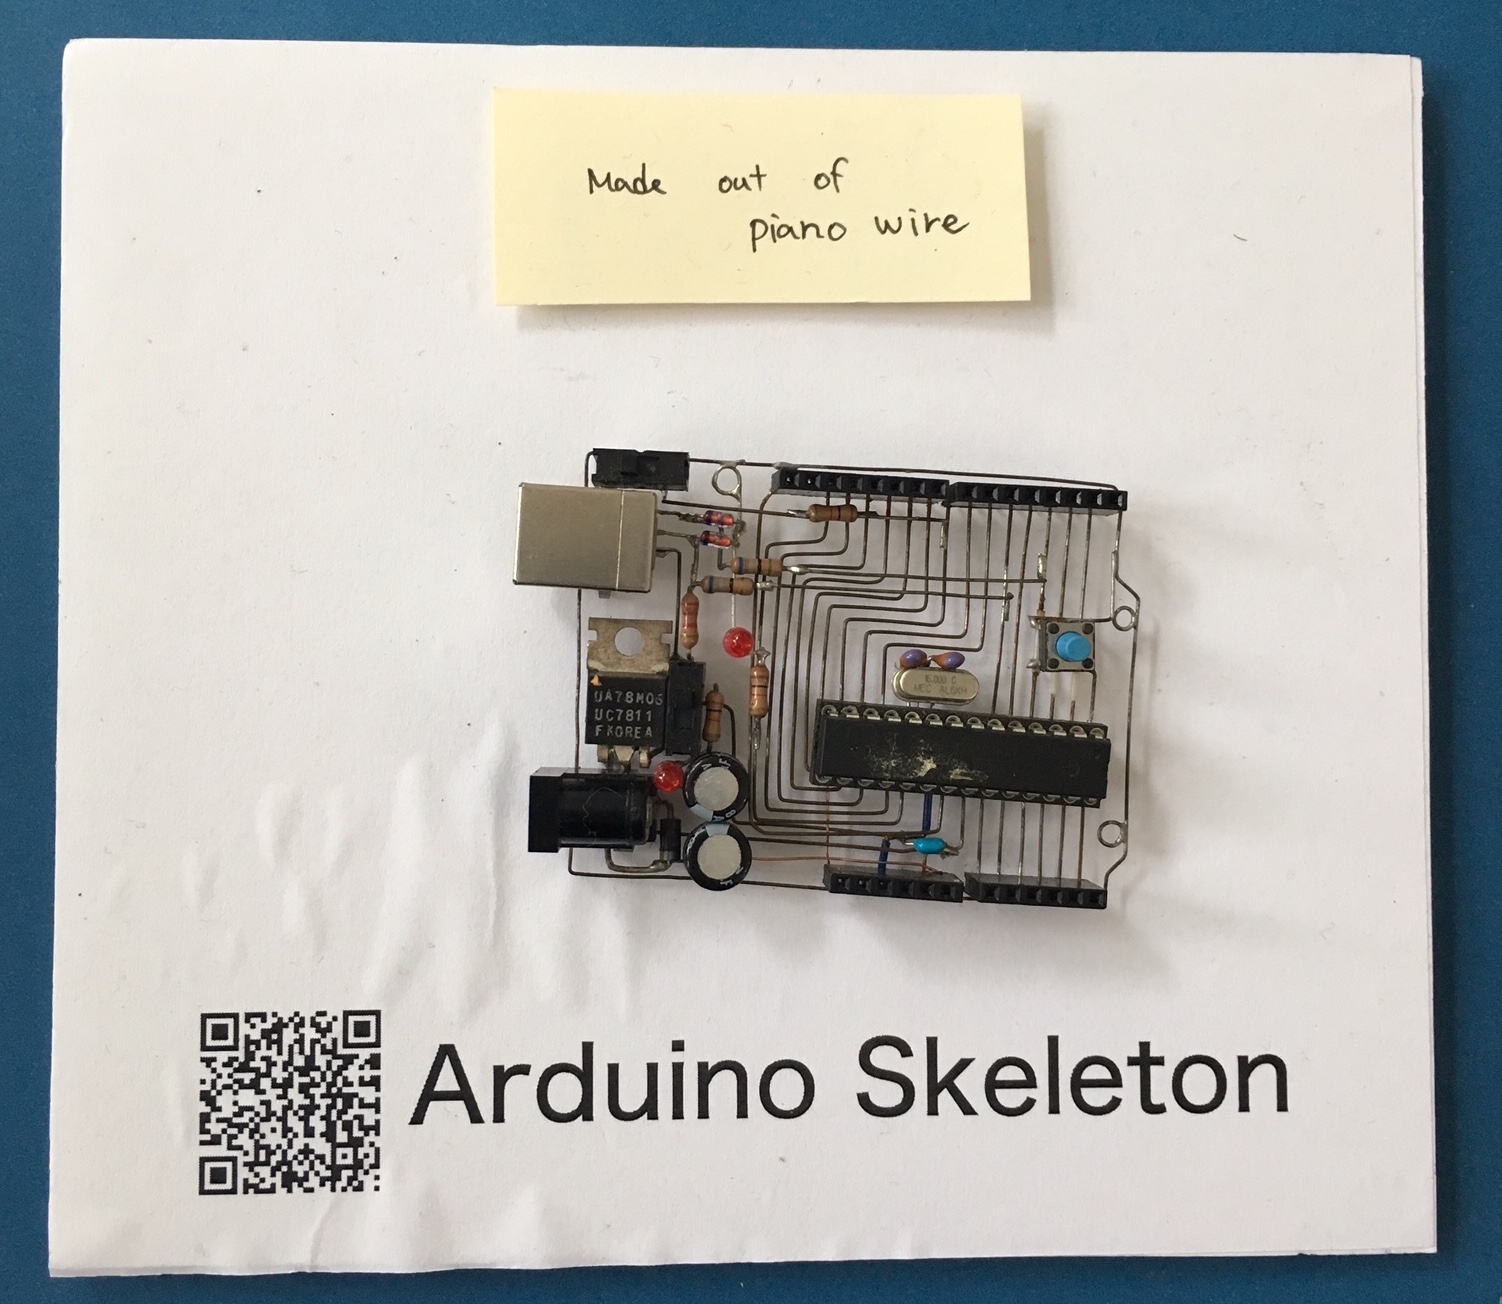 skeletonduino